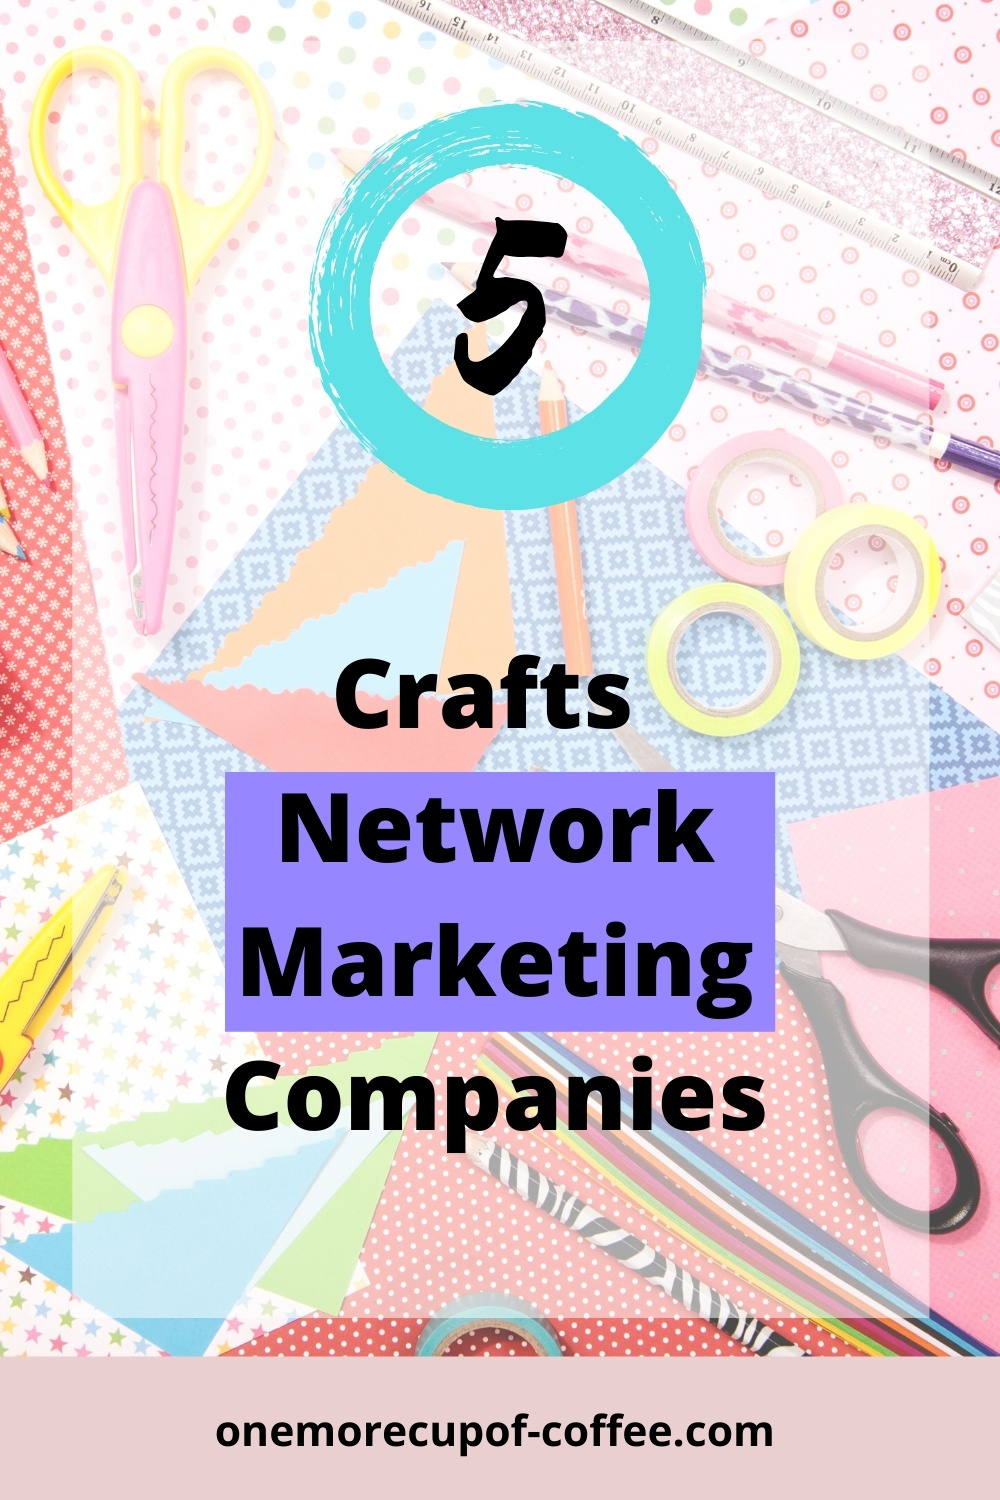 Craft materials to represent Crafts Network Marketing Companies